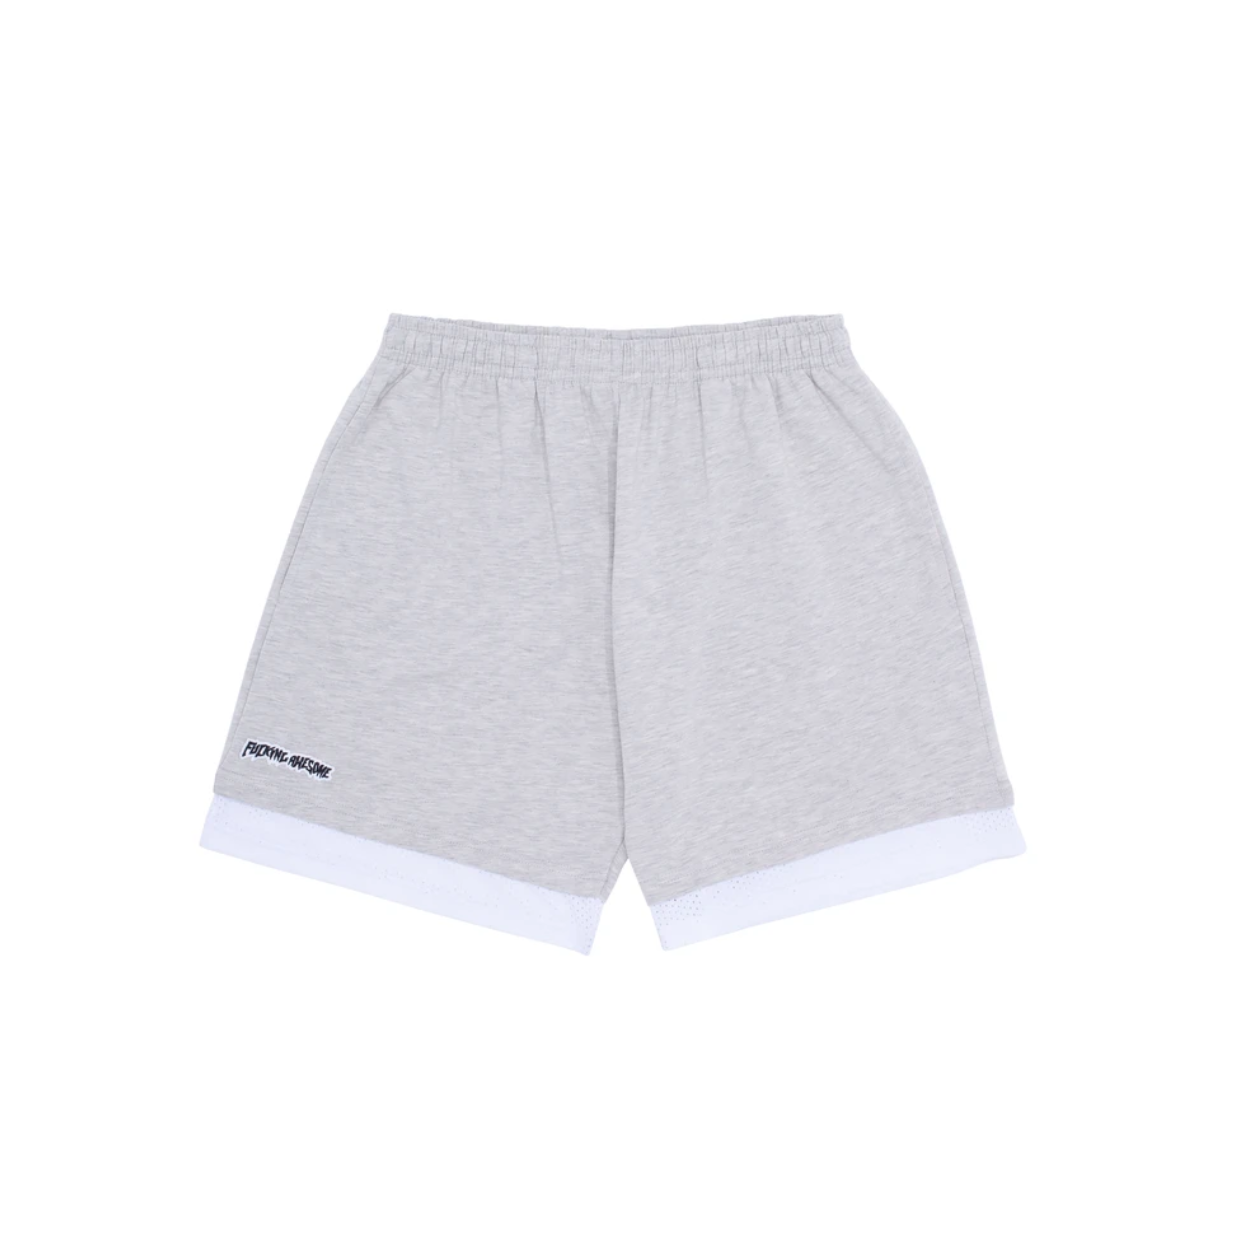 Fucking Awesome Hoops Double Short Grey